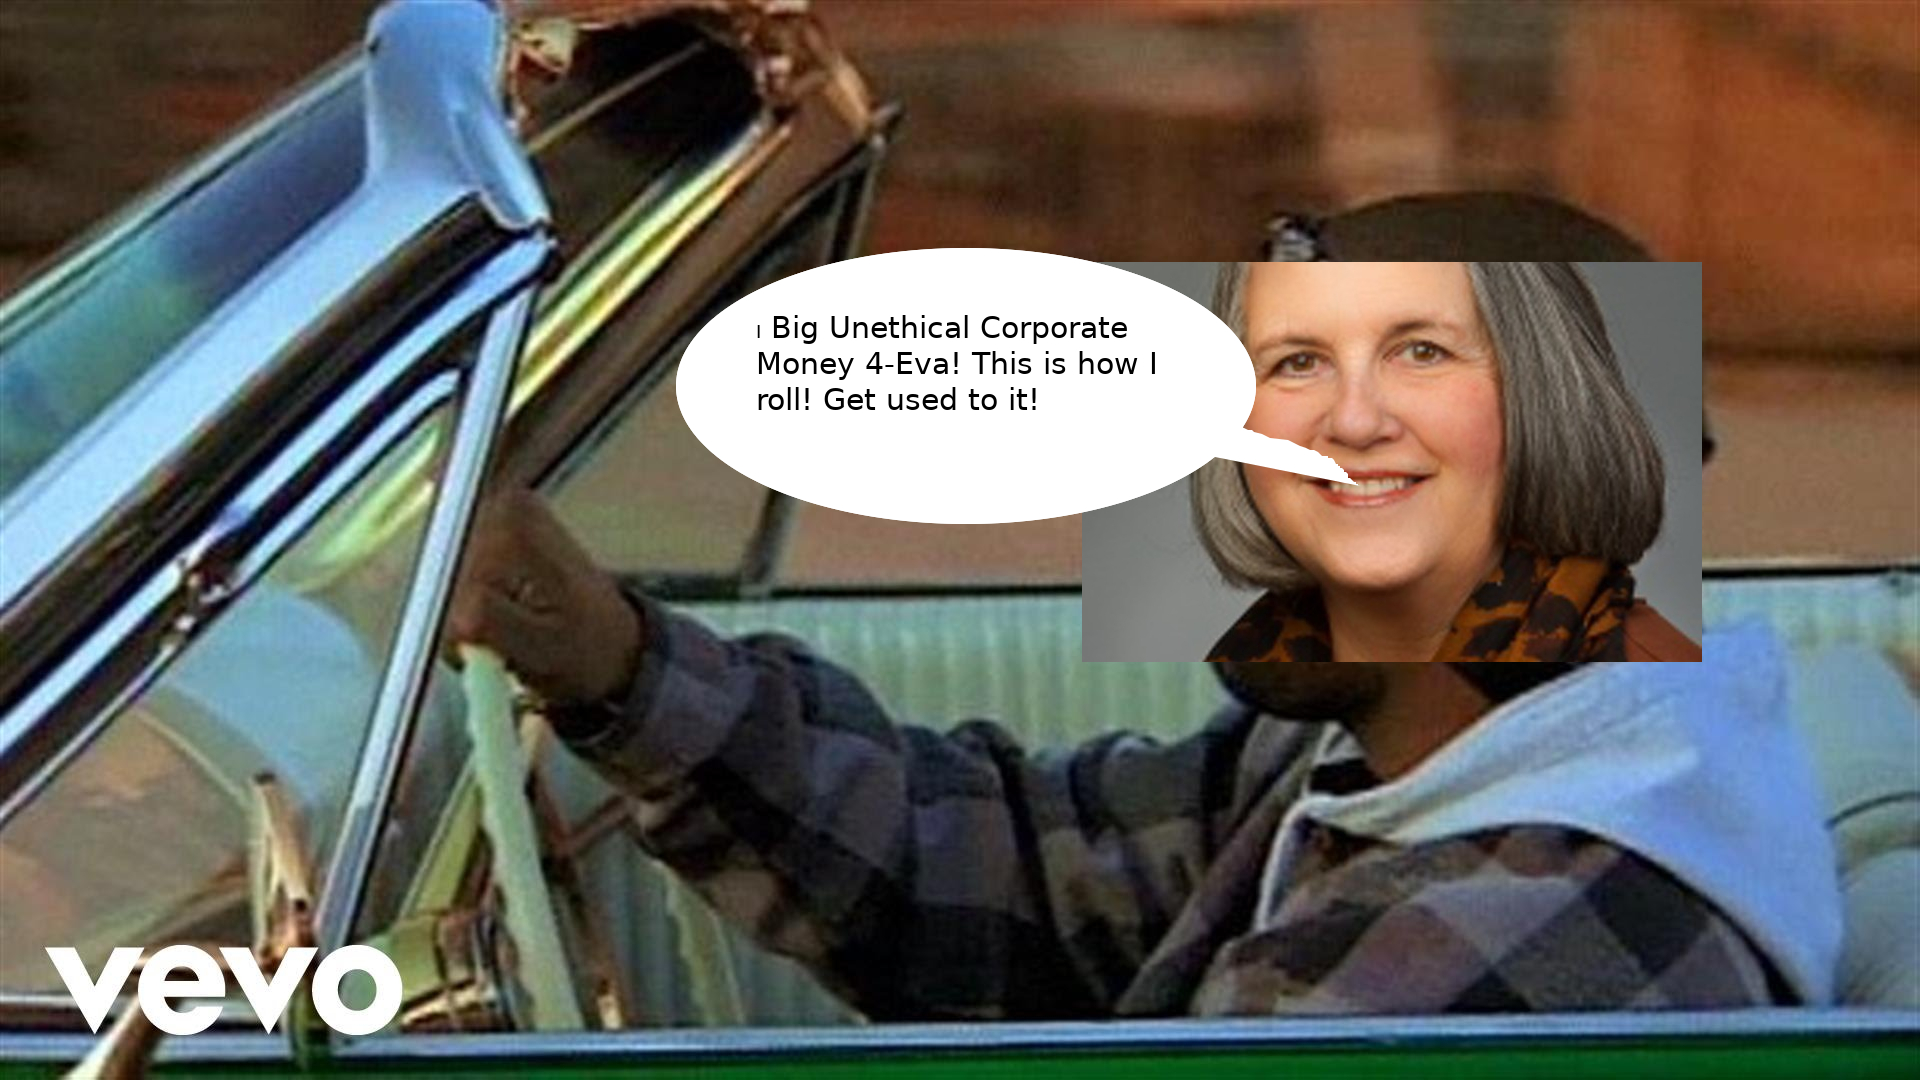 How To Get A Free Car From The Government >> 12 Questions (The Odd and Inappropriate) | Northwest Citizen